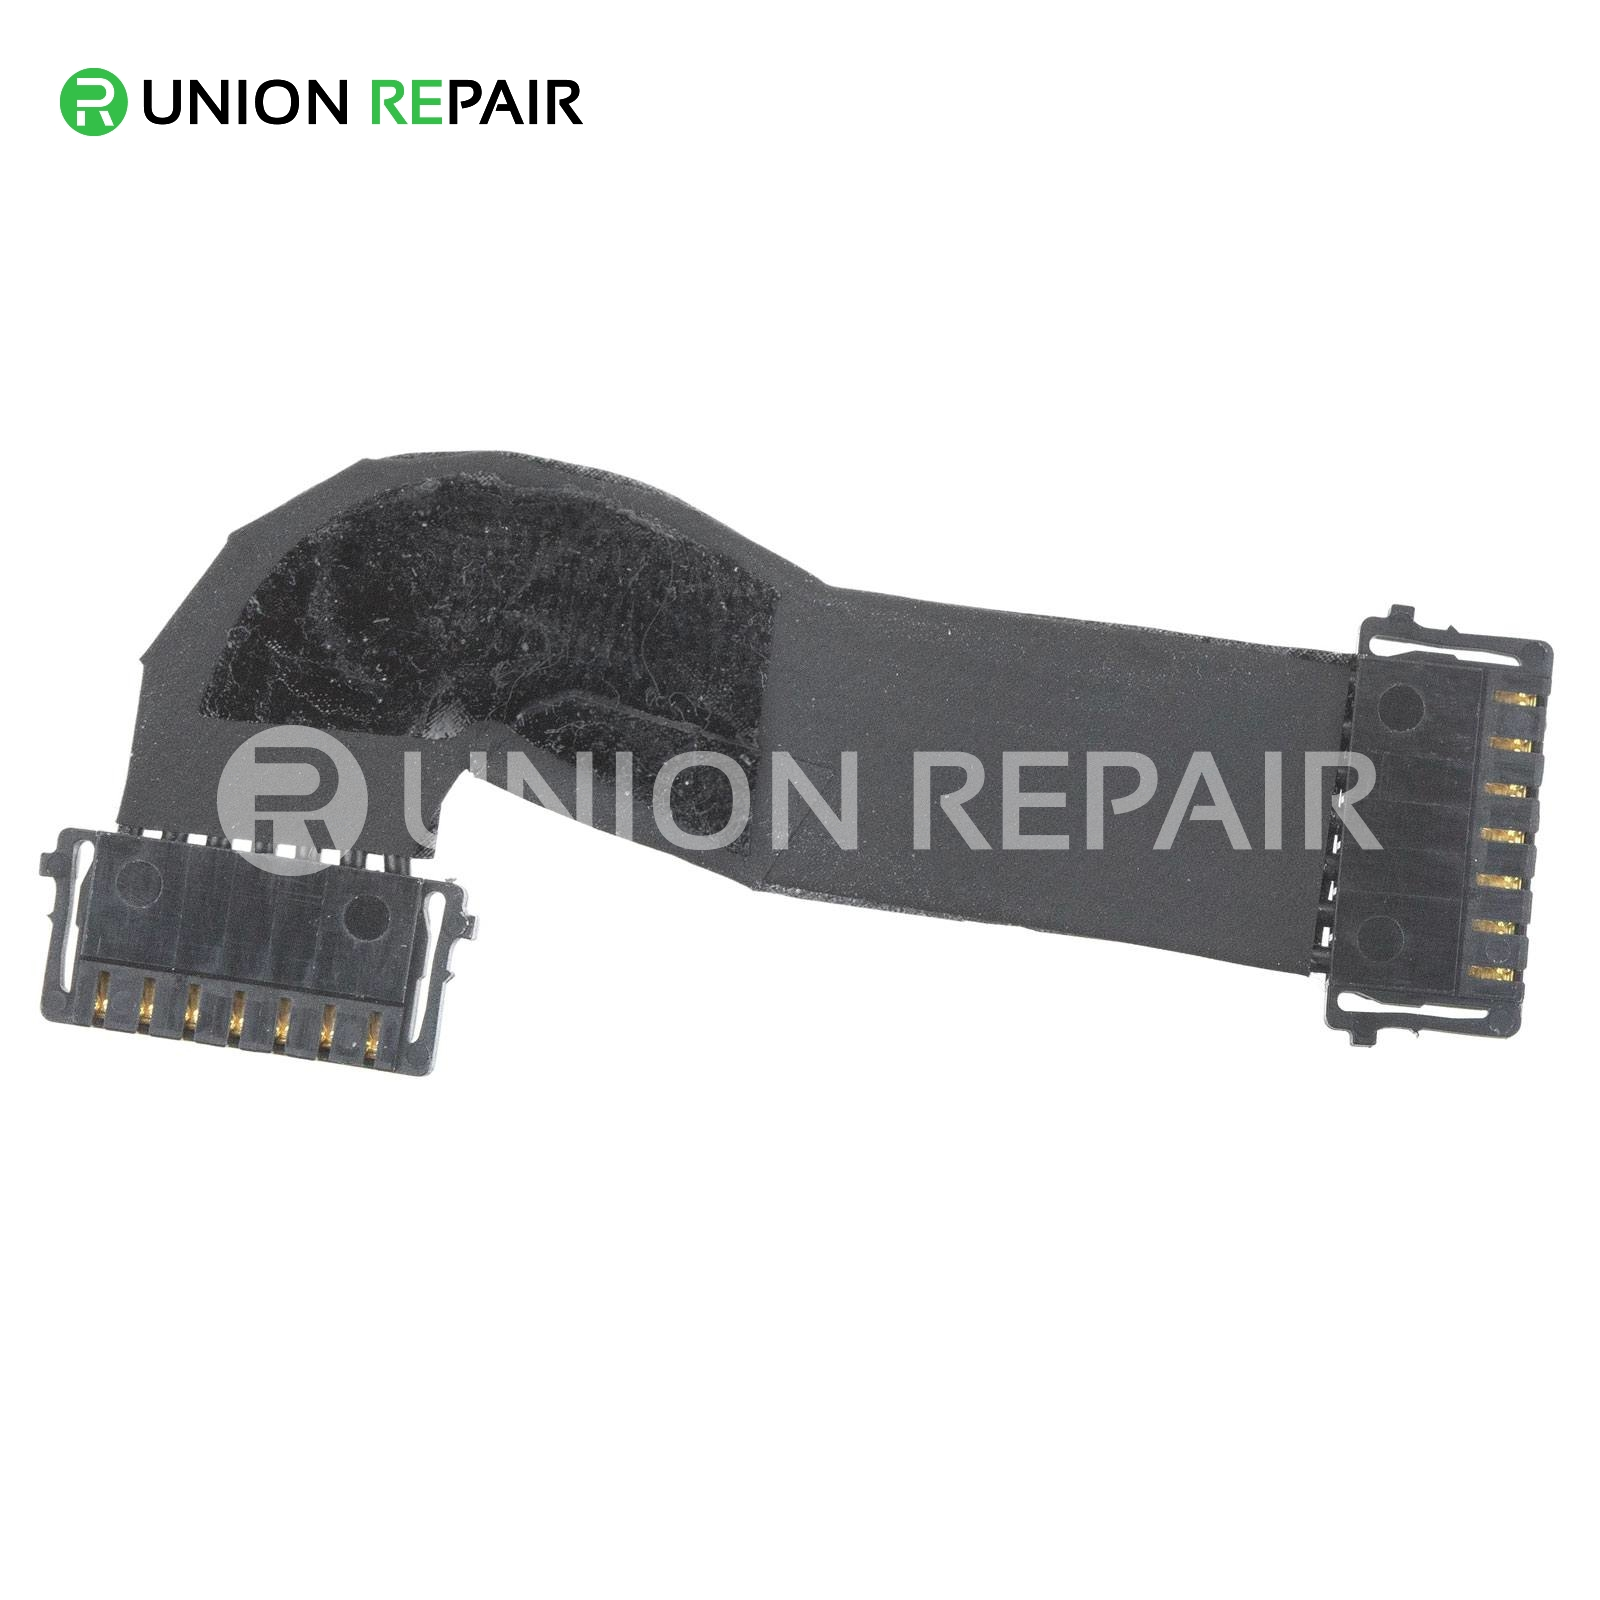 """Power Supply Signal Cable for iMac 27"""" A1419 (Late 2012 - Late 2013)"""